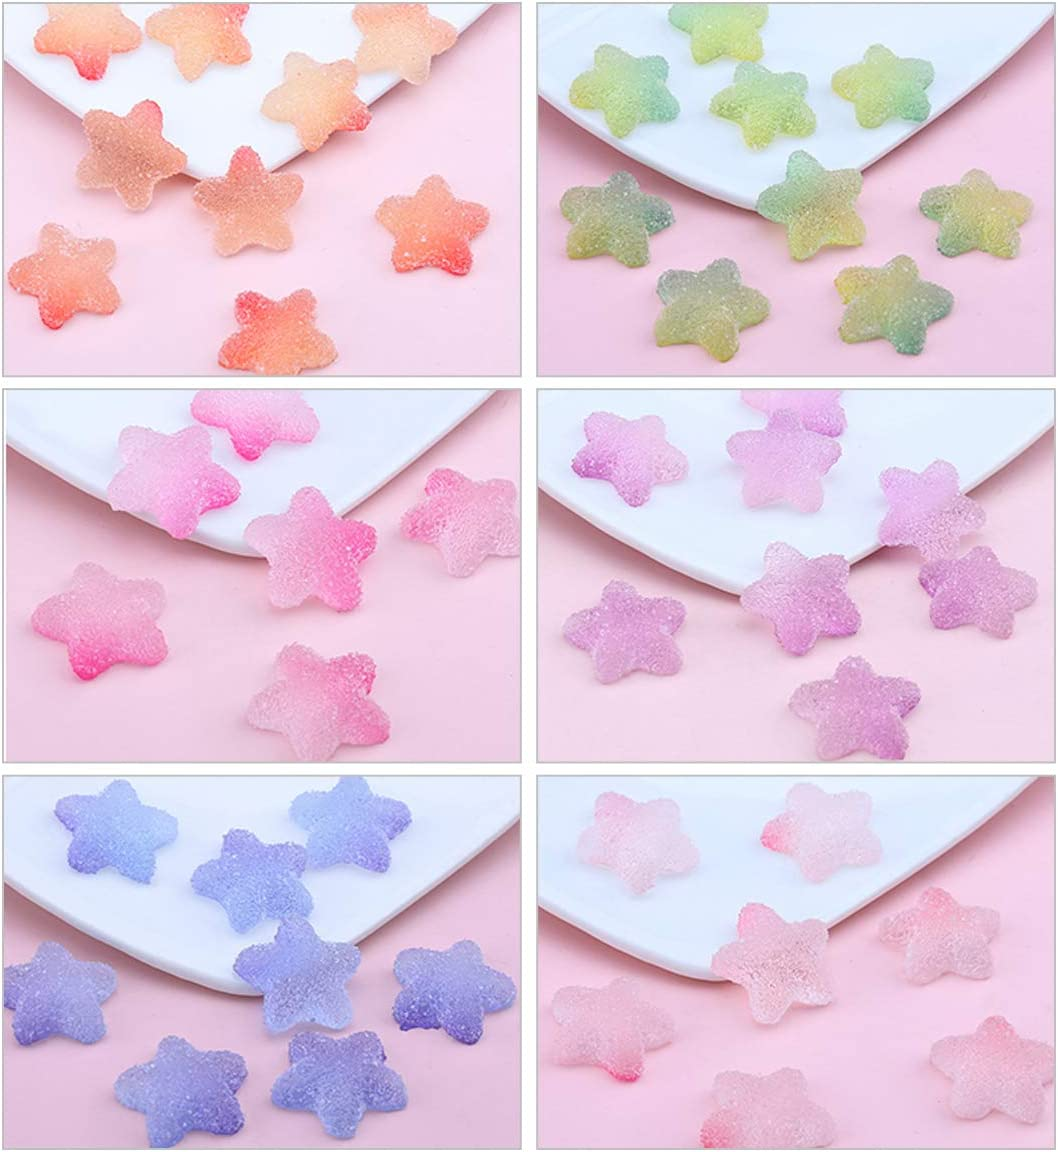 iSuperb 60pcs Slime Charms Mixed Candy Resin Charms Star Cabochon Mini Candy Model Clay Polymer Slime Beads for DIY Earrings, Pendant Decoration Accessories (Star-shape)